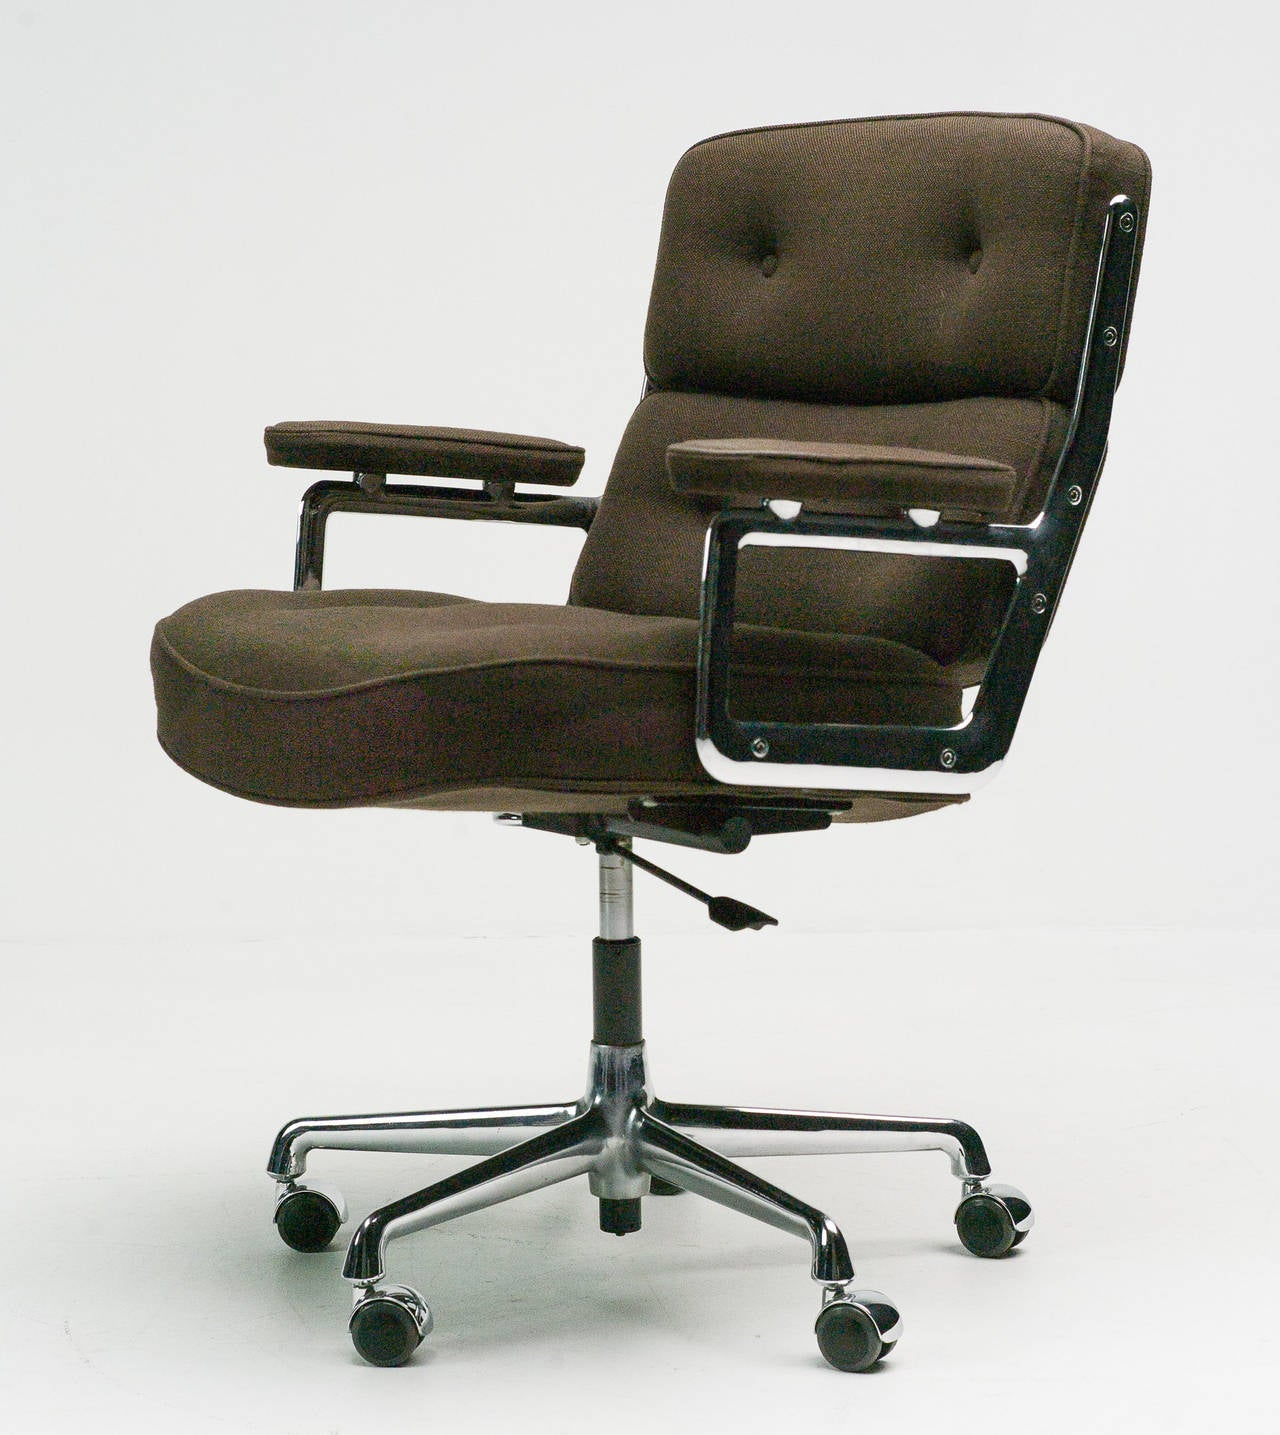 vitra eames desk chairs vitra eames desk chairs bedroommarvellous eames office chair soft